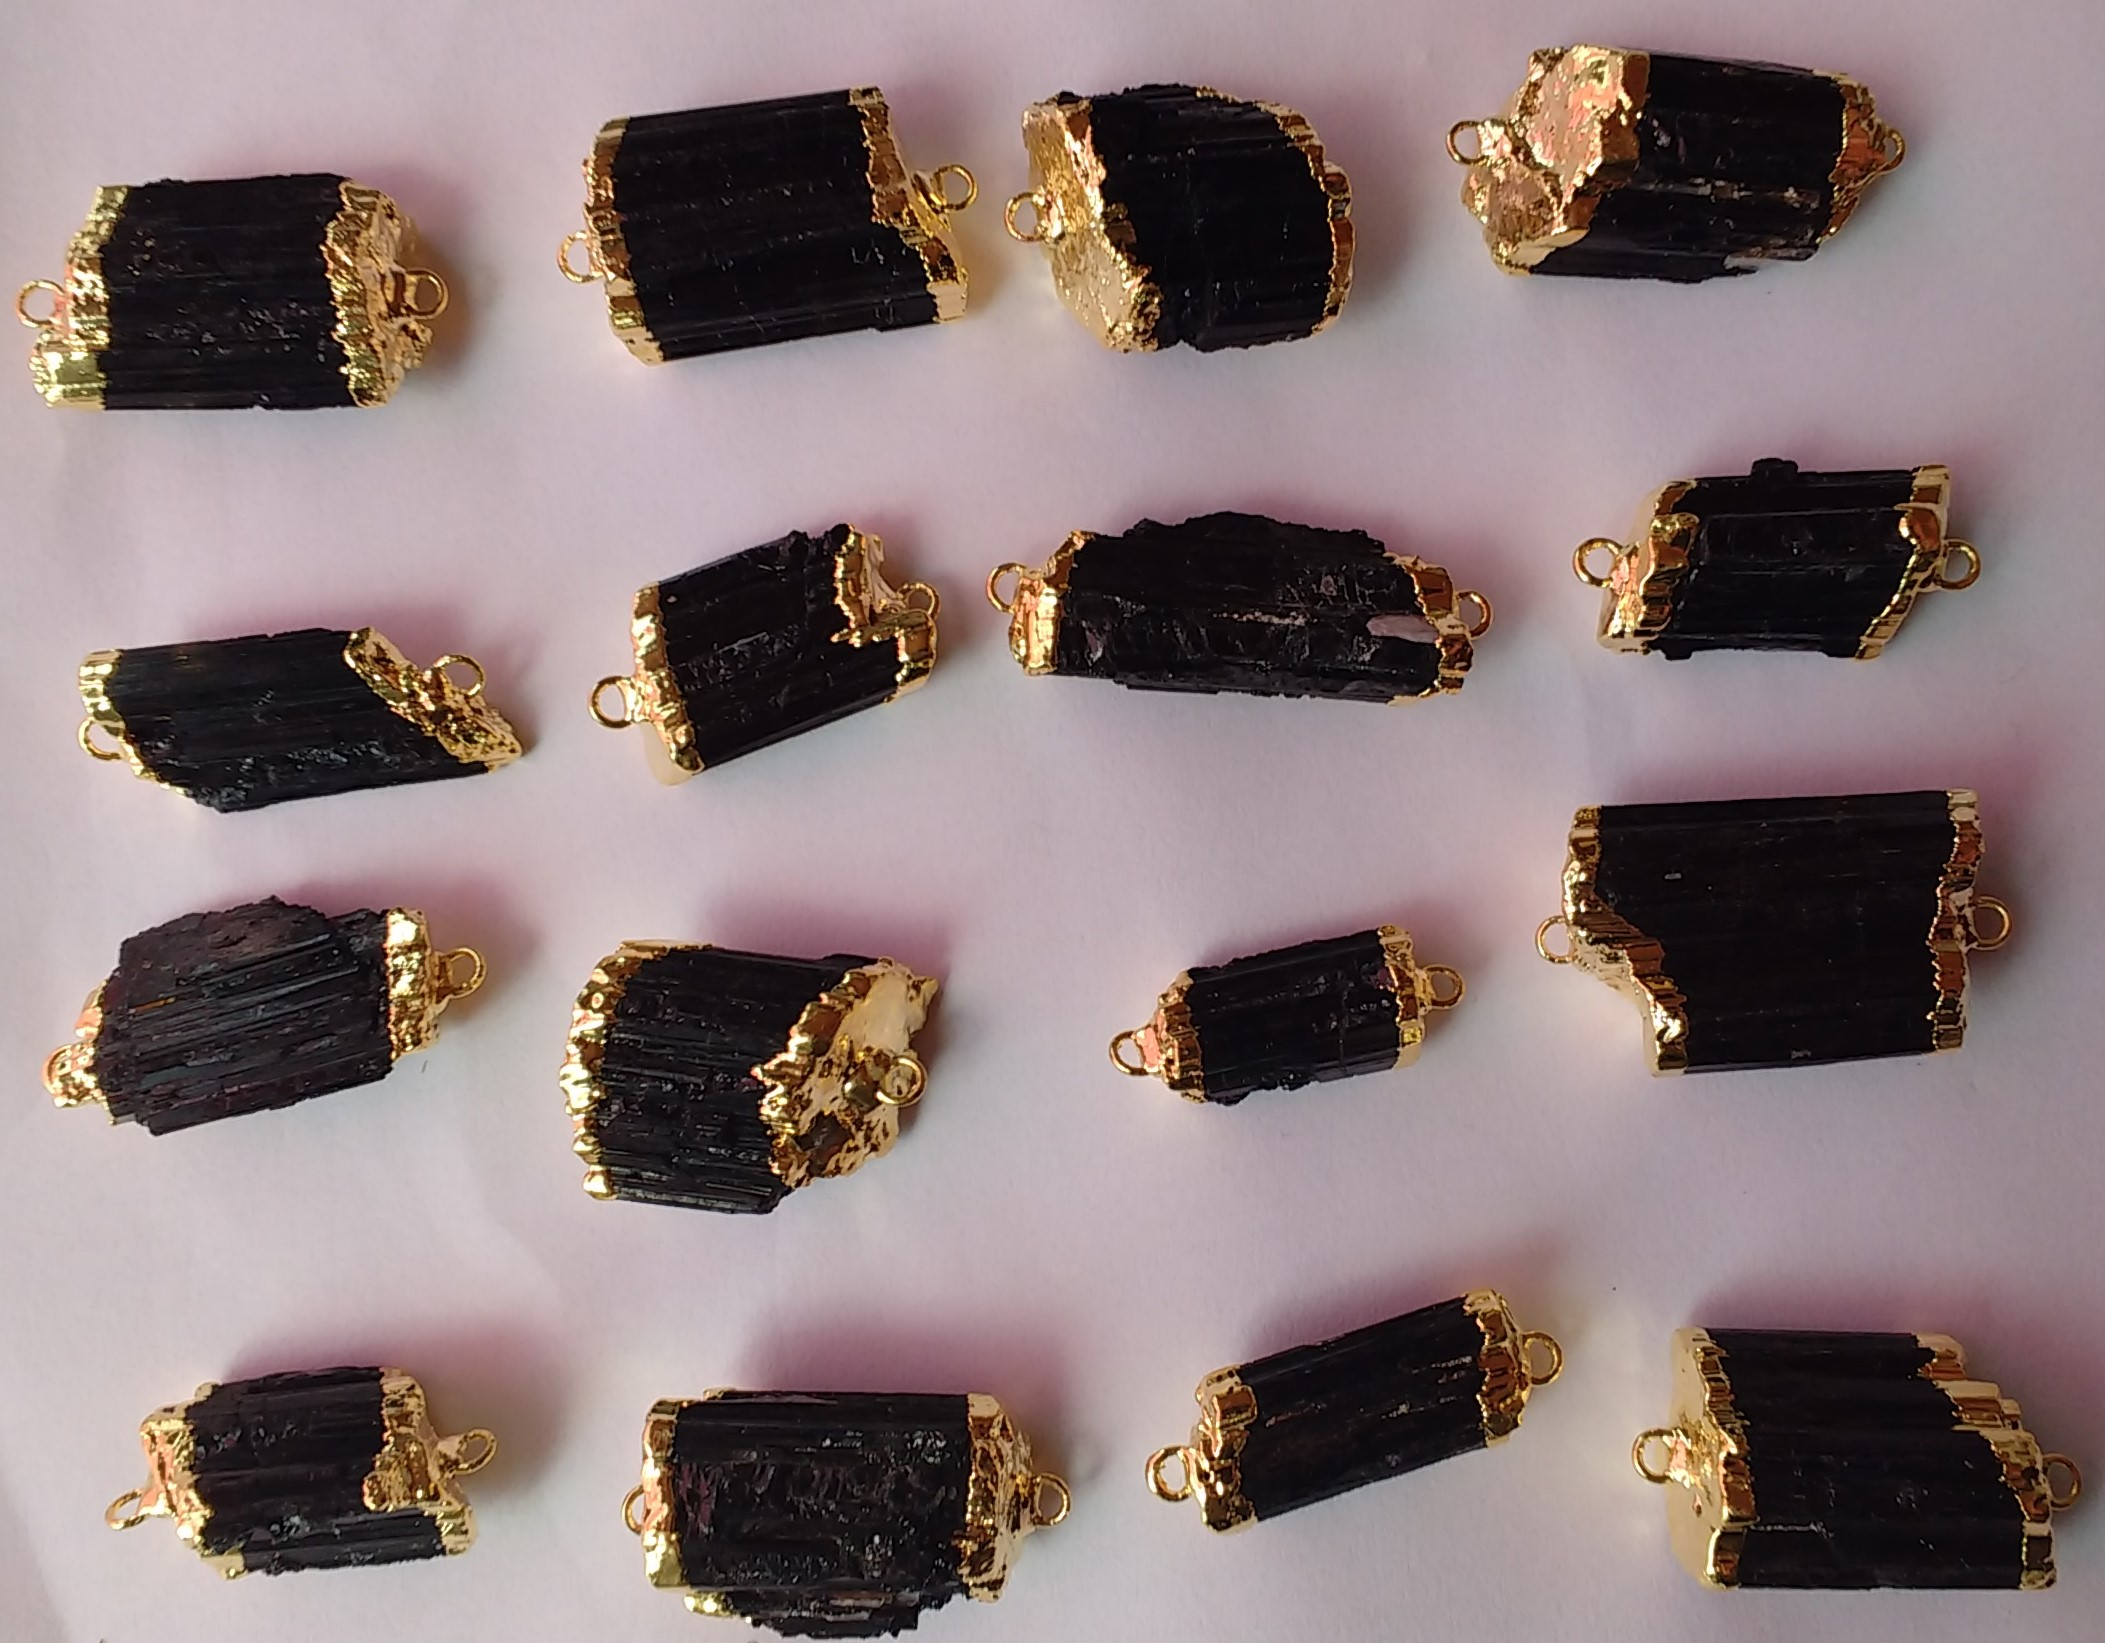 Stones from Uruguay - Black Tourmaline Connector, 21-35mm, Gold Plated